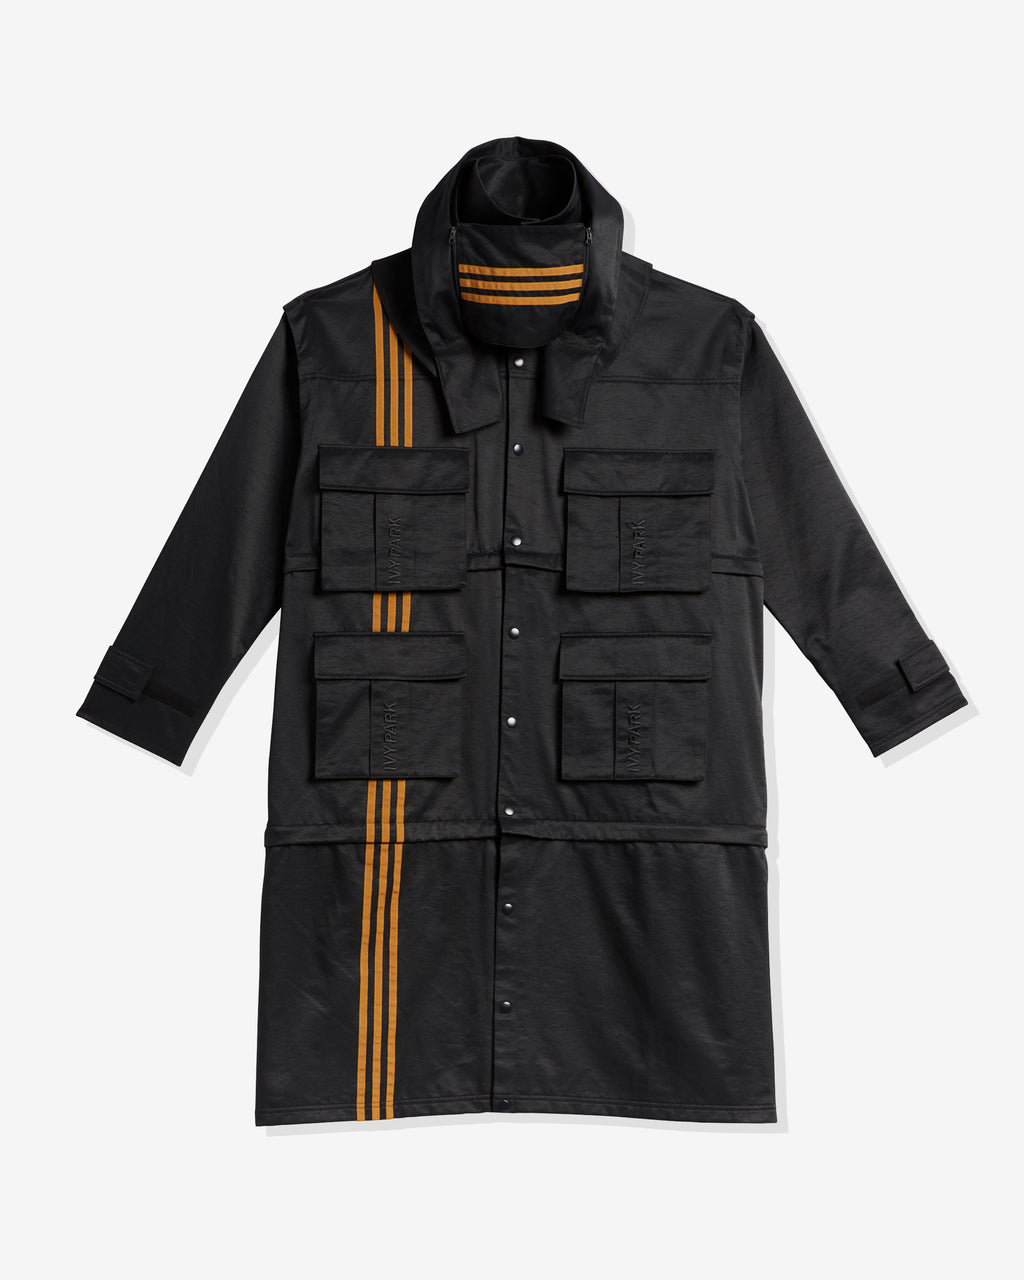 ADIDAS X IVP 4ALL CV JKT - BLACK